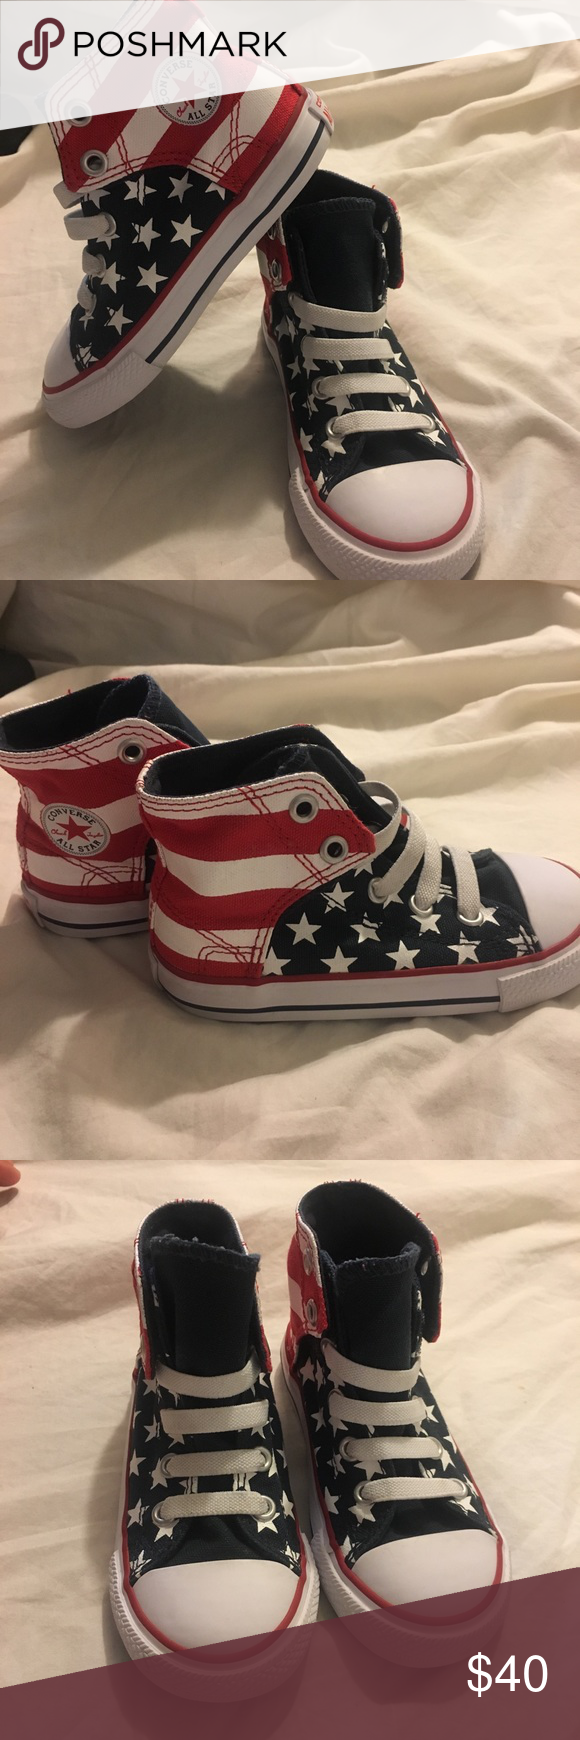 ce4c1fe5b91f0c Converse all star chuck Taylor American flag shoes Only worn once